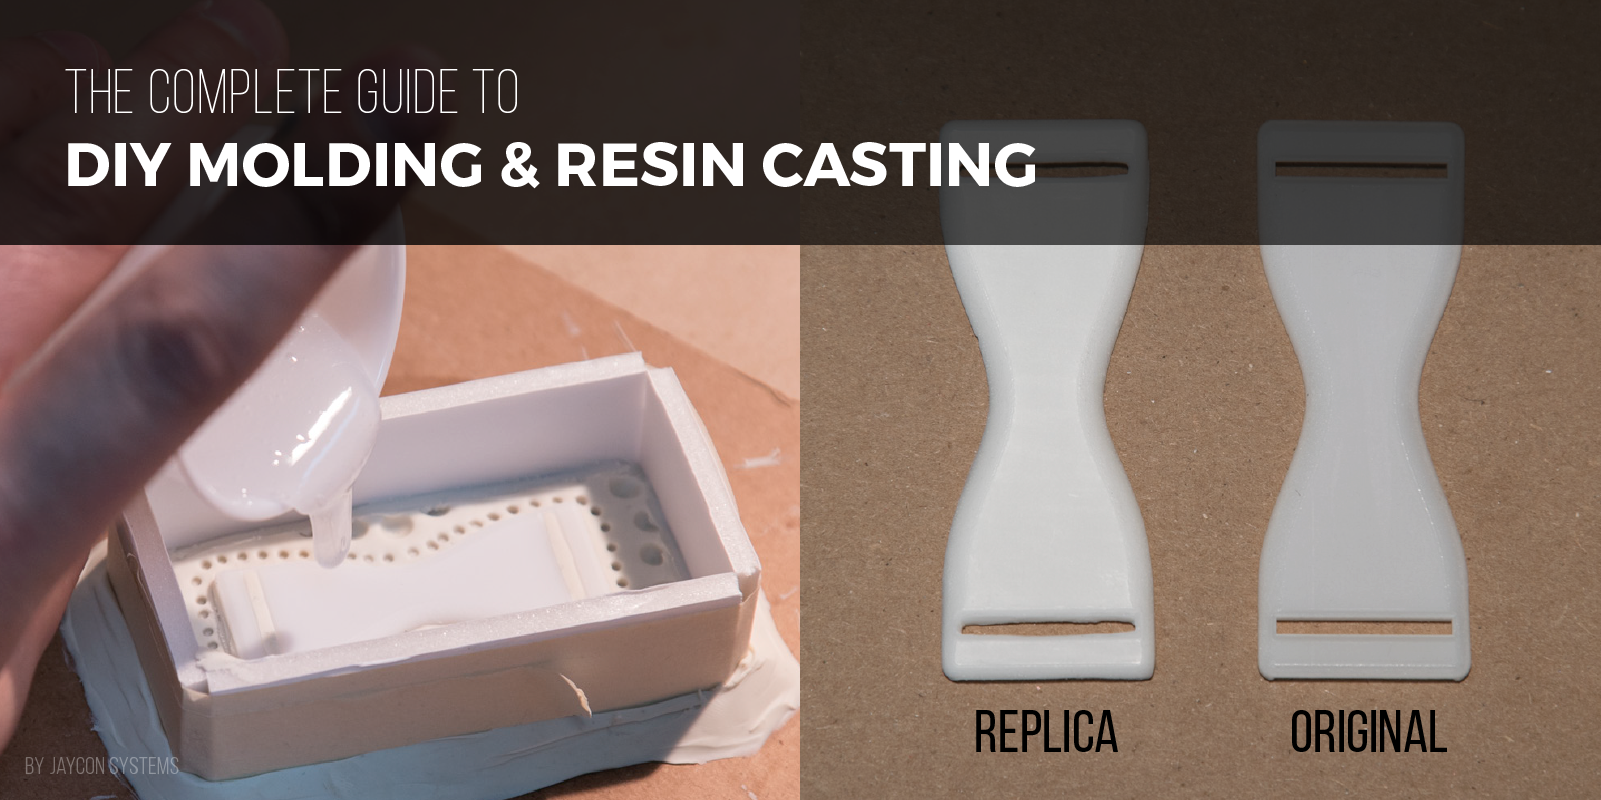 The Complete Guide to DIY Molding & Resin Casting - Jaycon